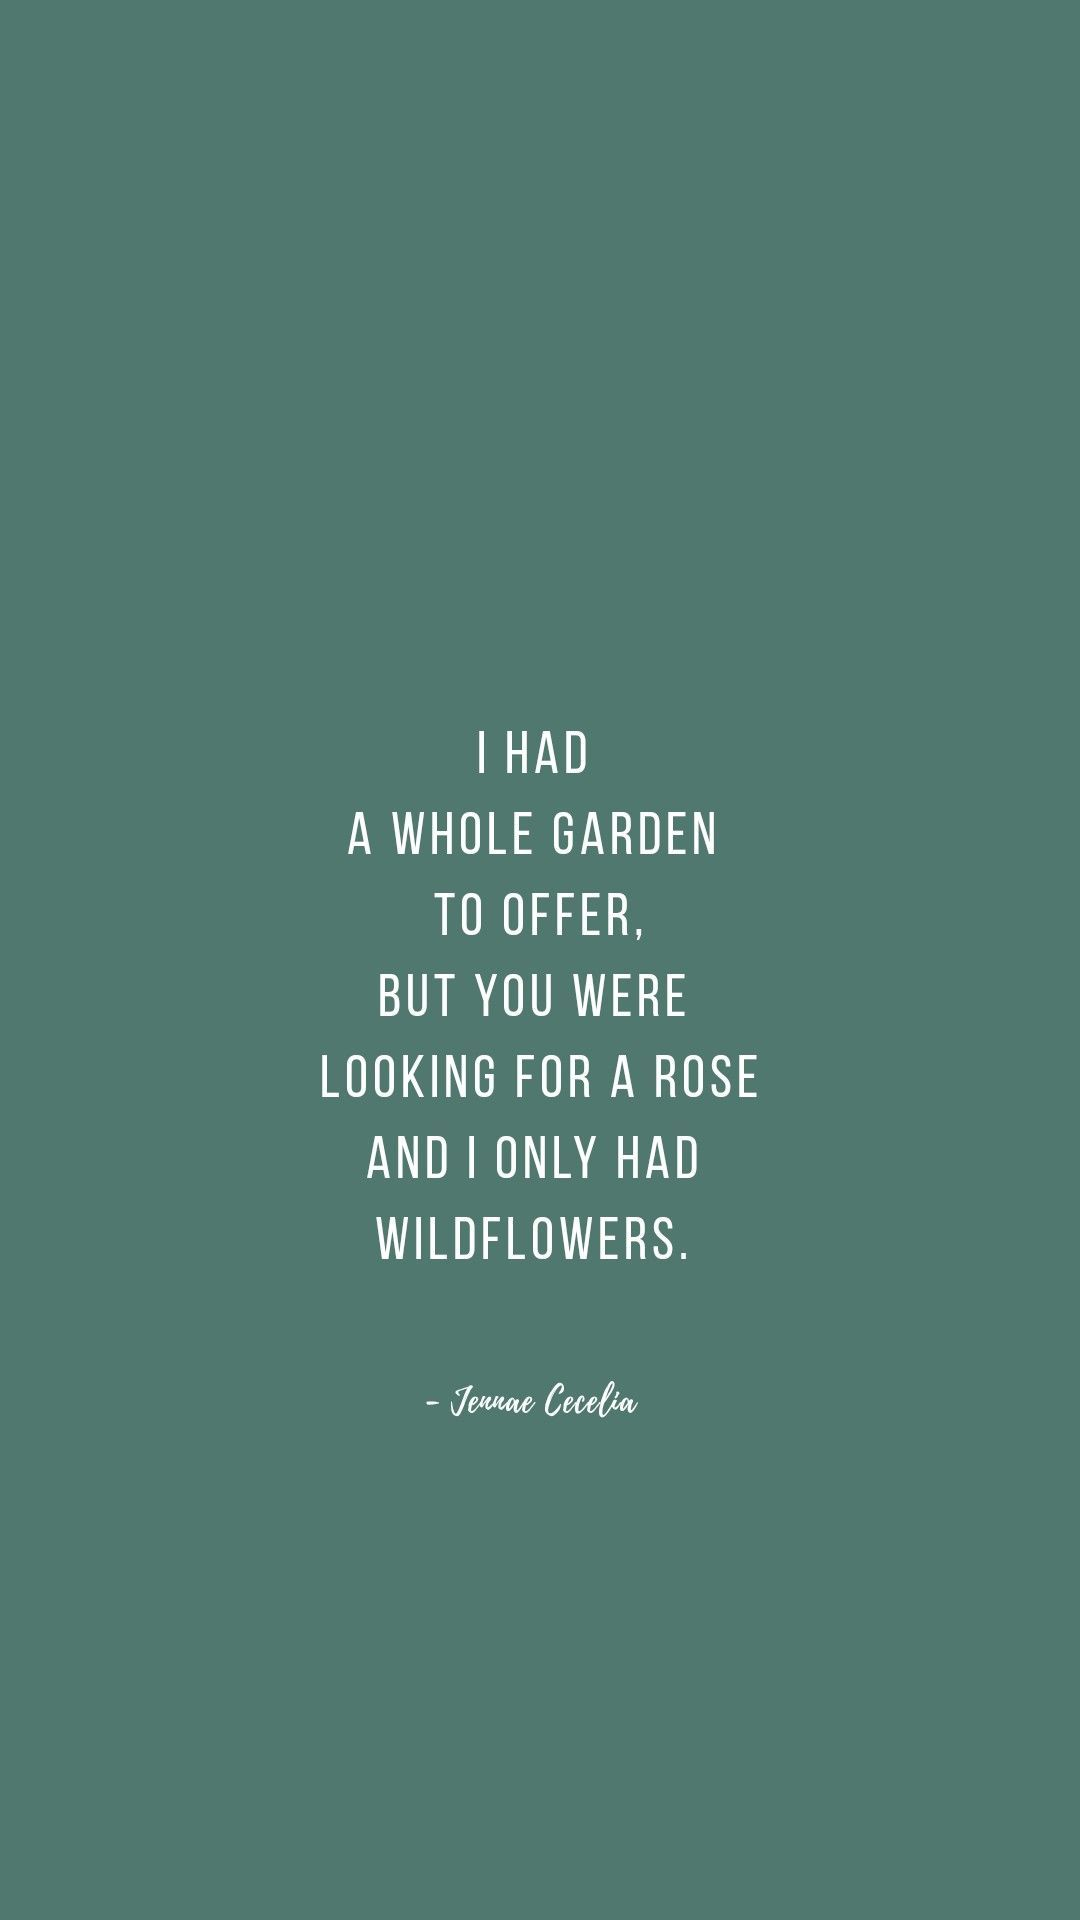 Garden Poetry Poem Quote Quotes About Strength Poem For Teens